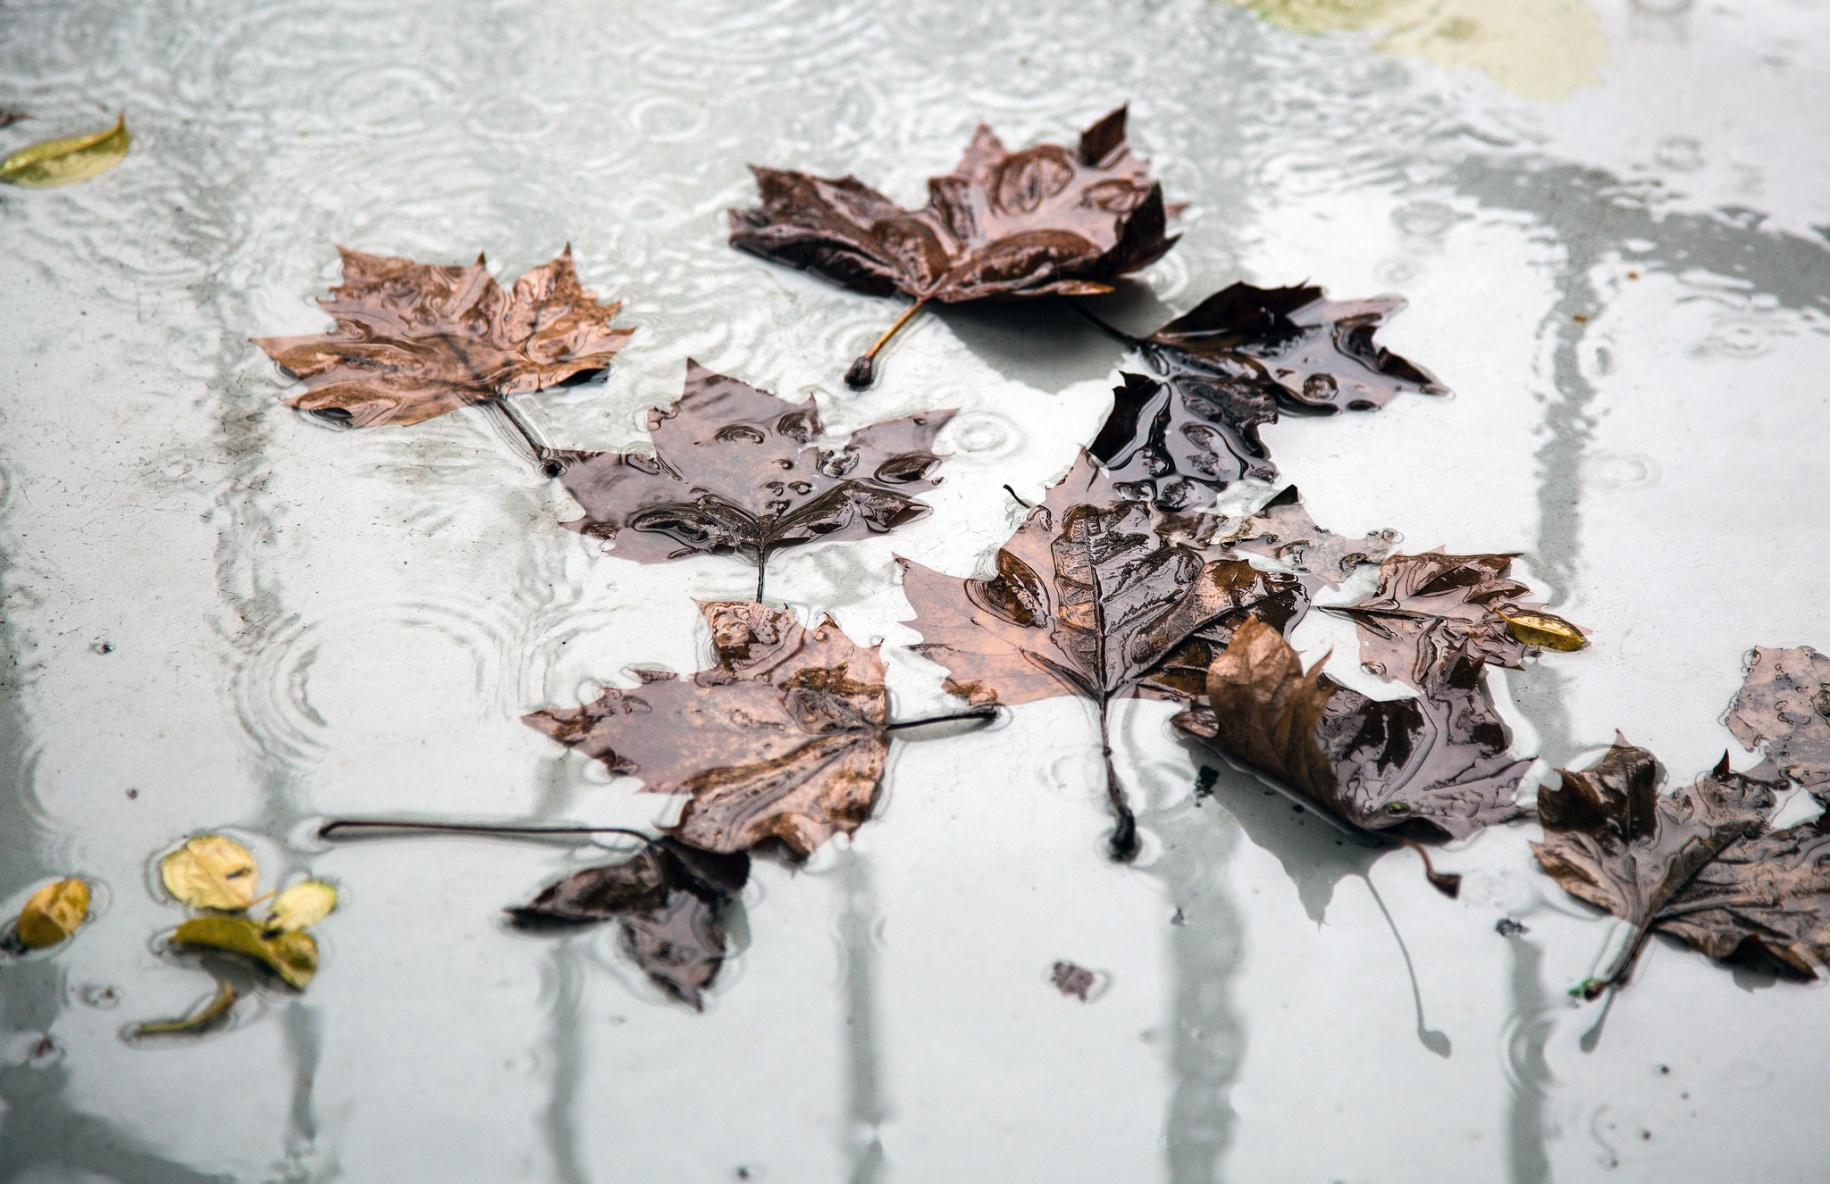 fallen leaves in a puddle of water